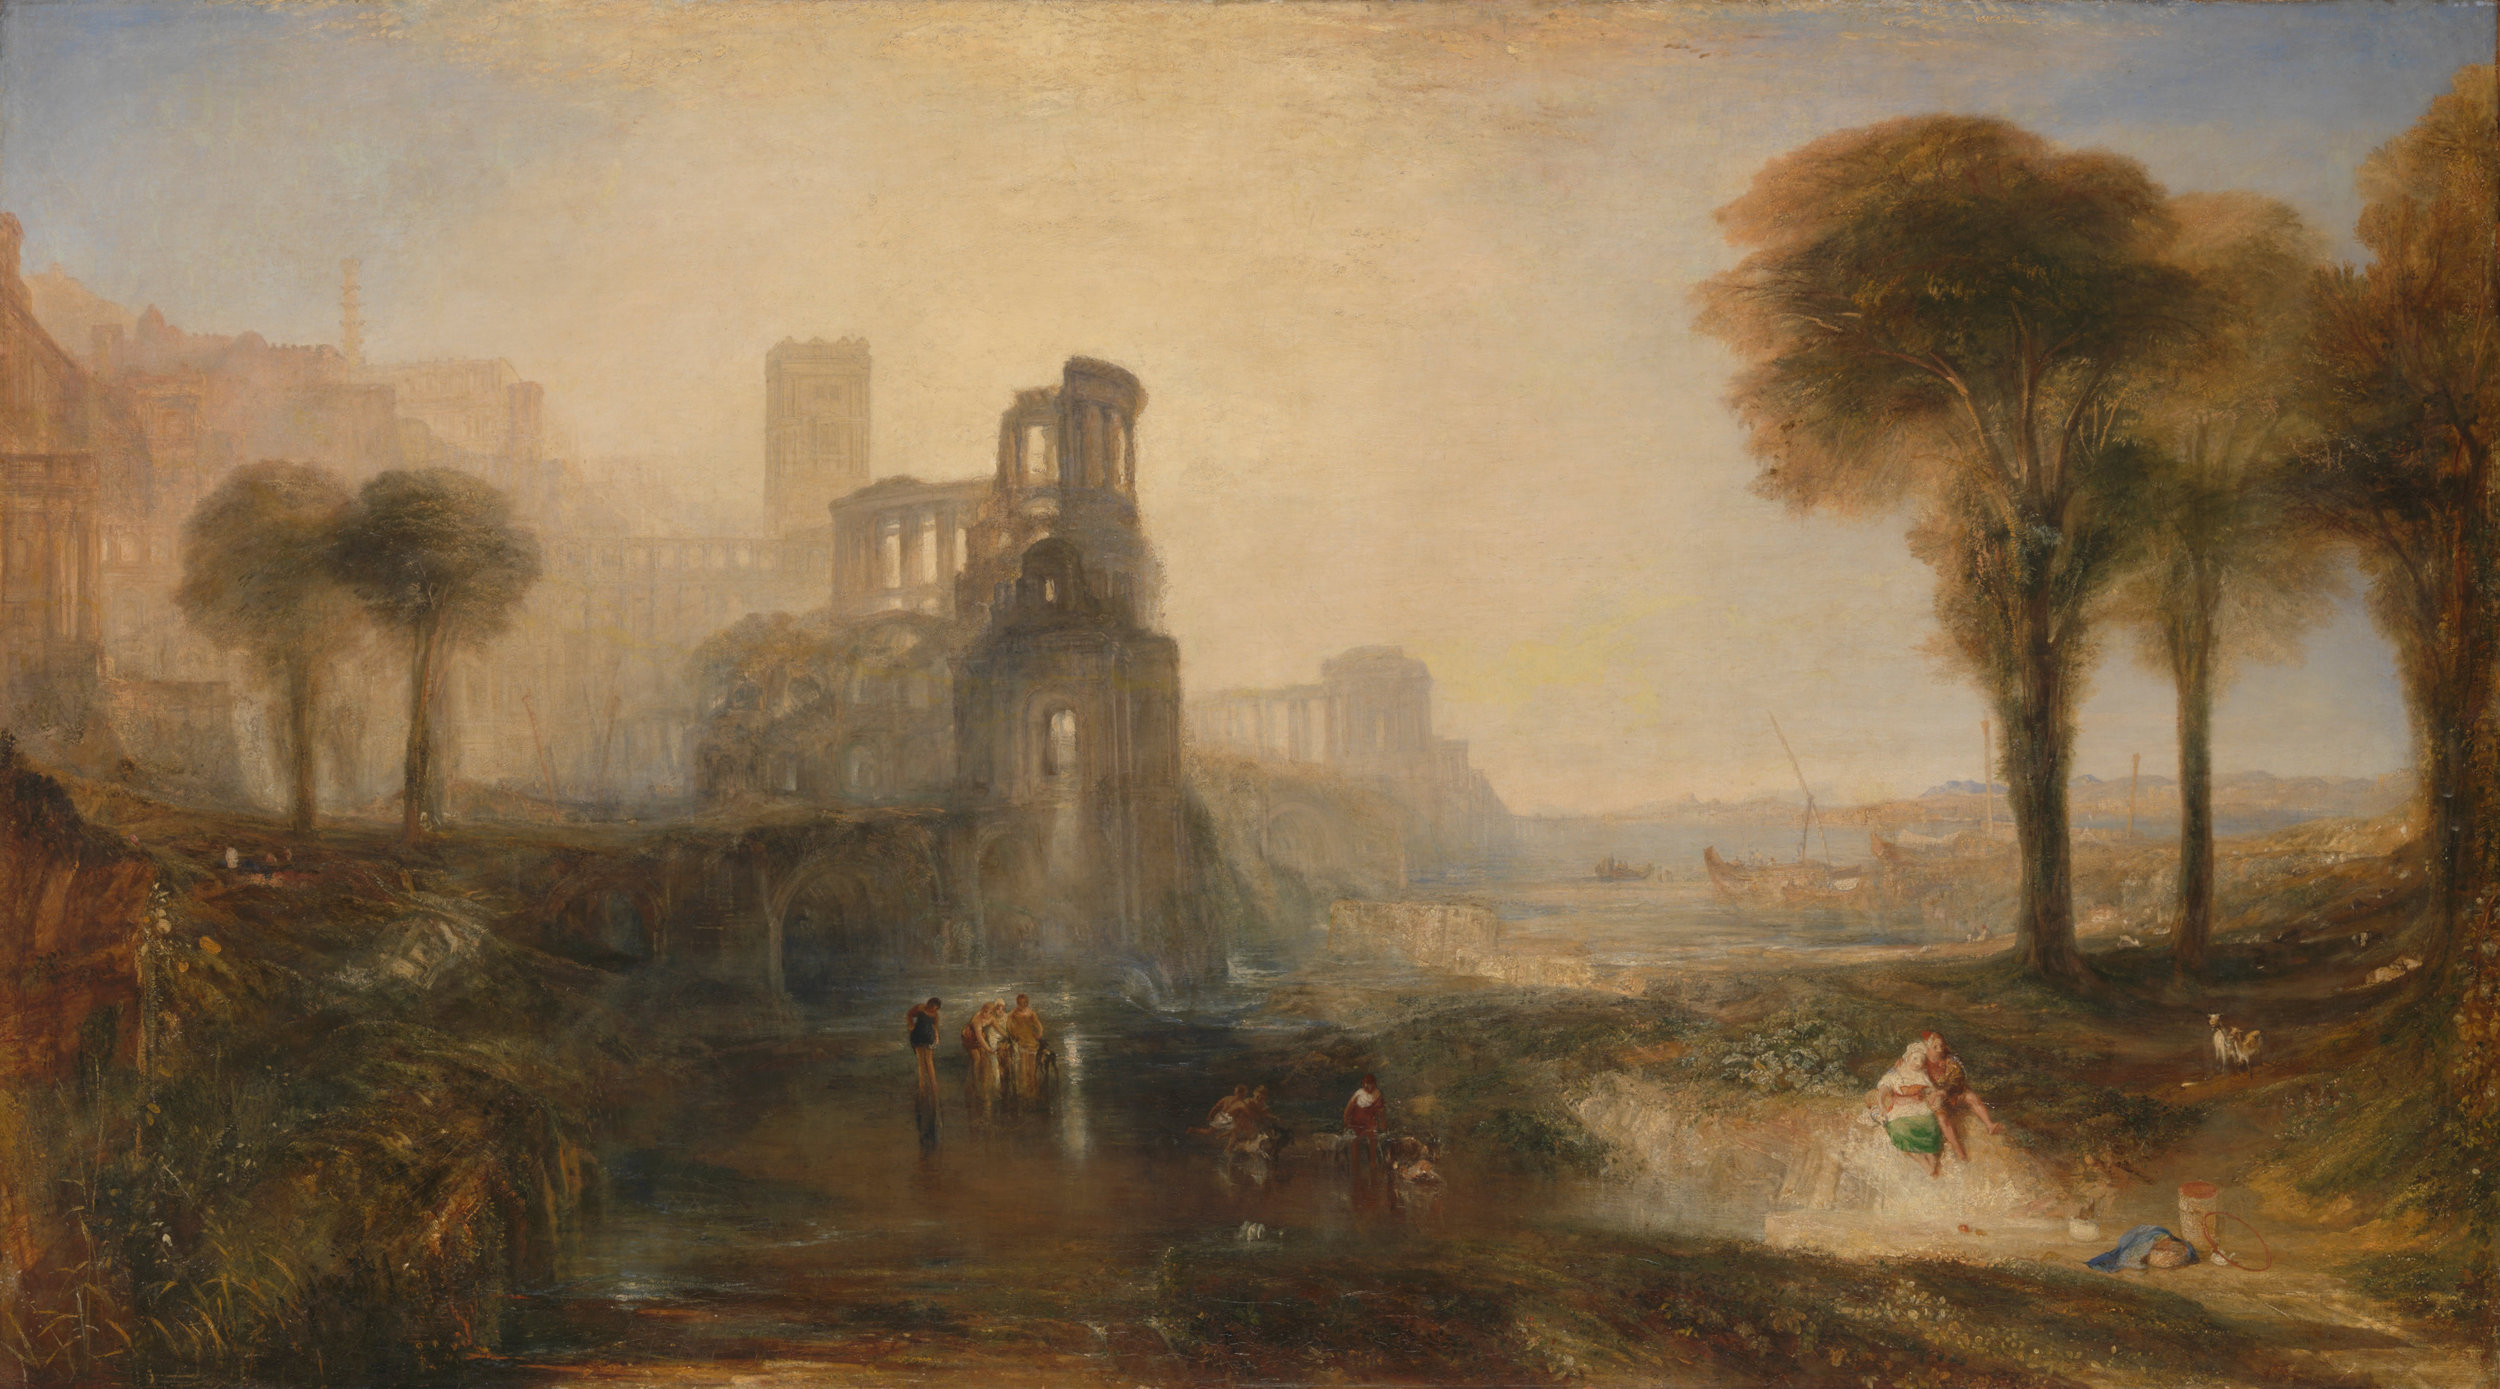 J. M. W. Turner, Caligula's Palace and Bridge, 1831 ©  Tate Britain , Photo © Tate CC-BY-NC-ND 3.0